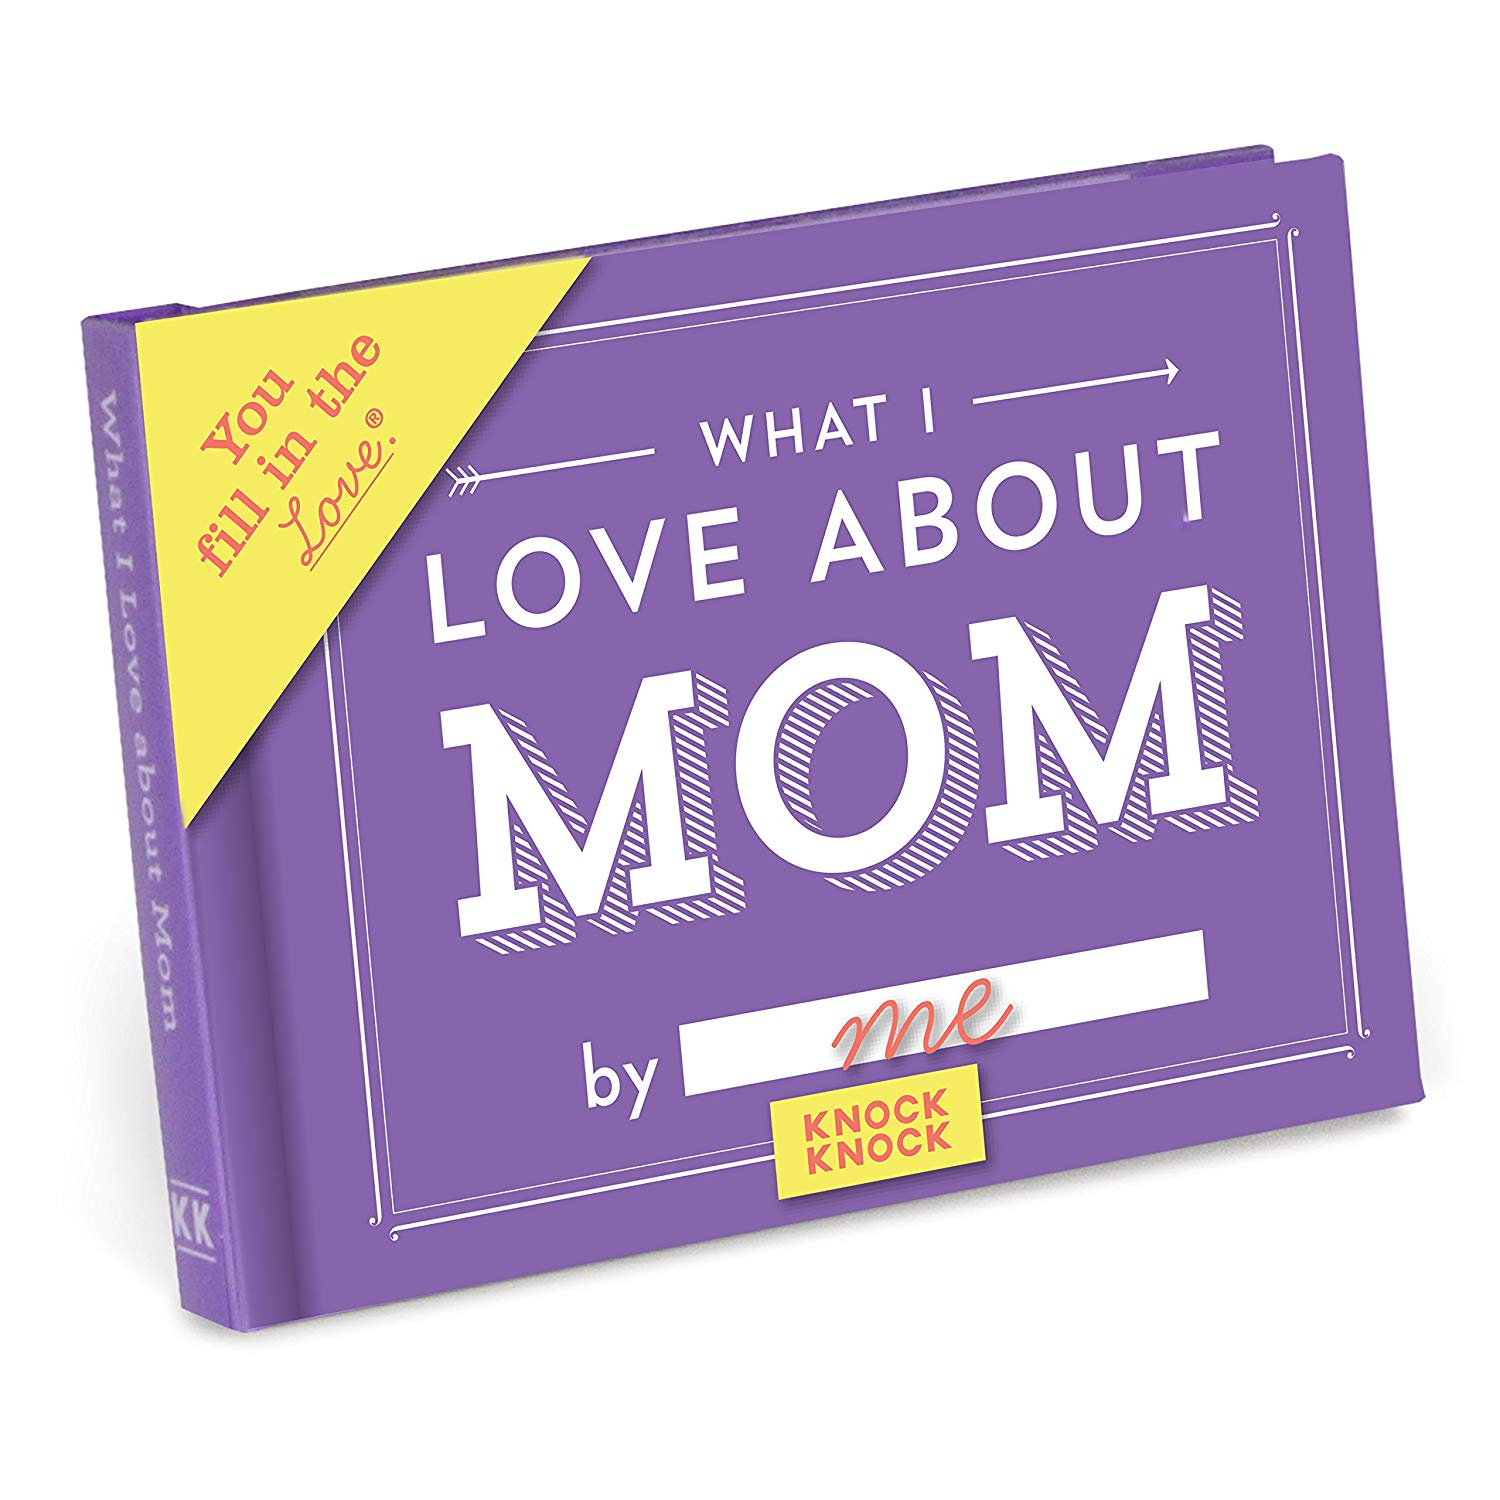 Fill-in-the-blank booklet - Amazon | $10If you have ever given or received one of these little books as a gift, you'll know how fun and special they are! This adds a personalized touch to any gift.